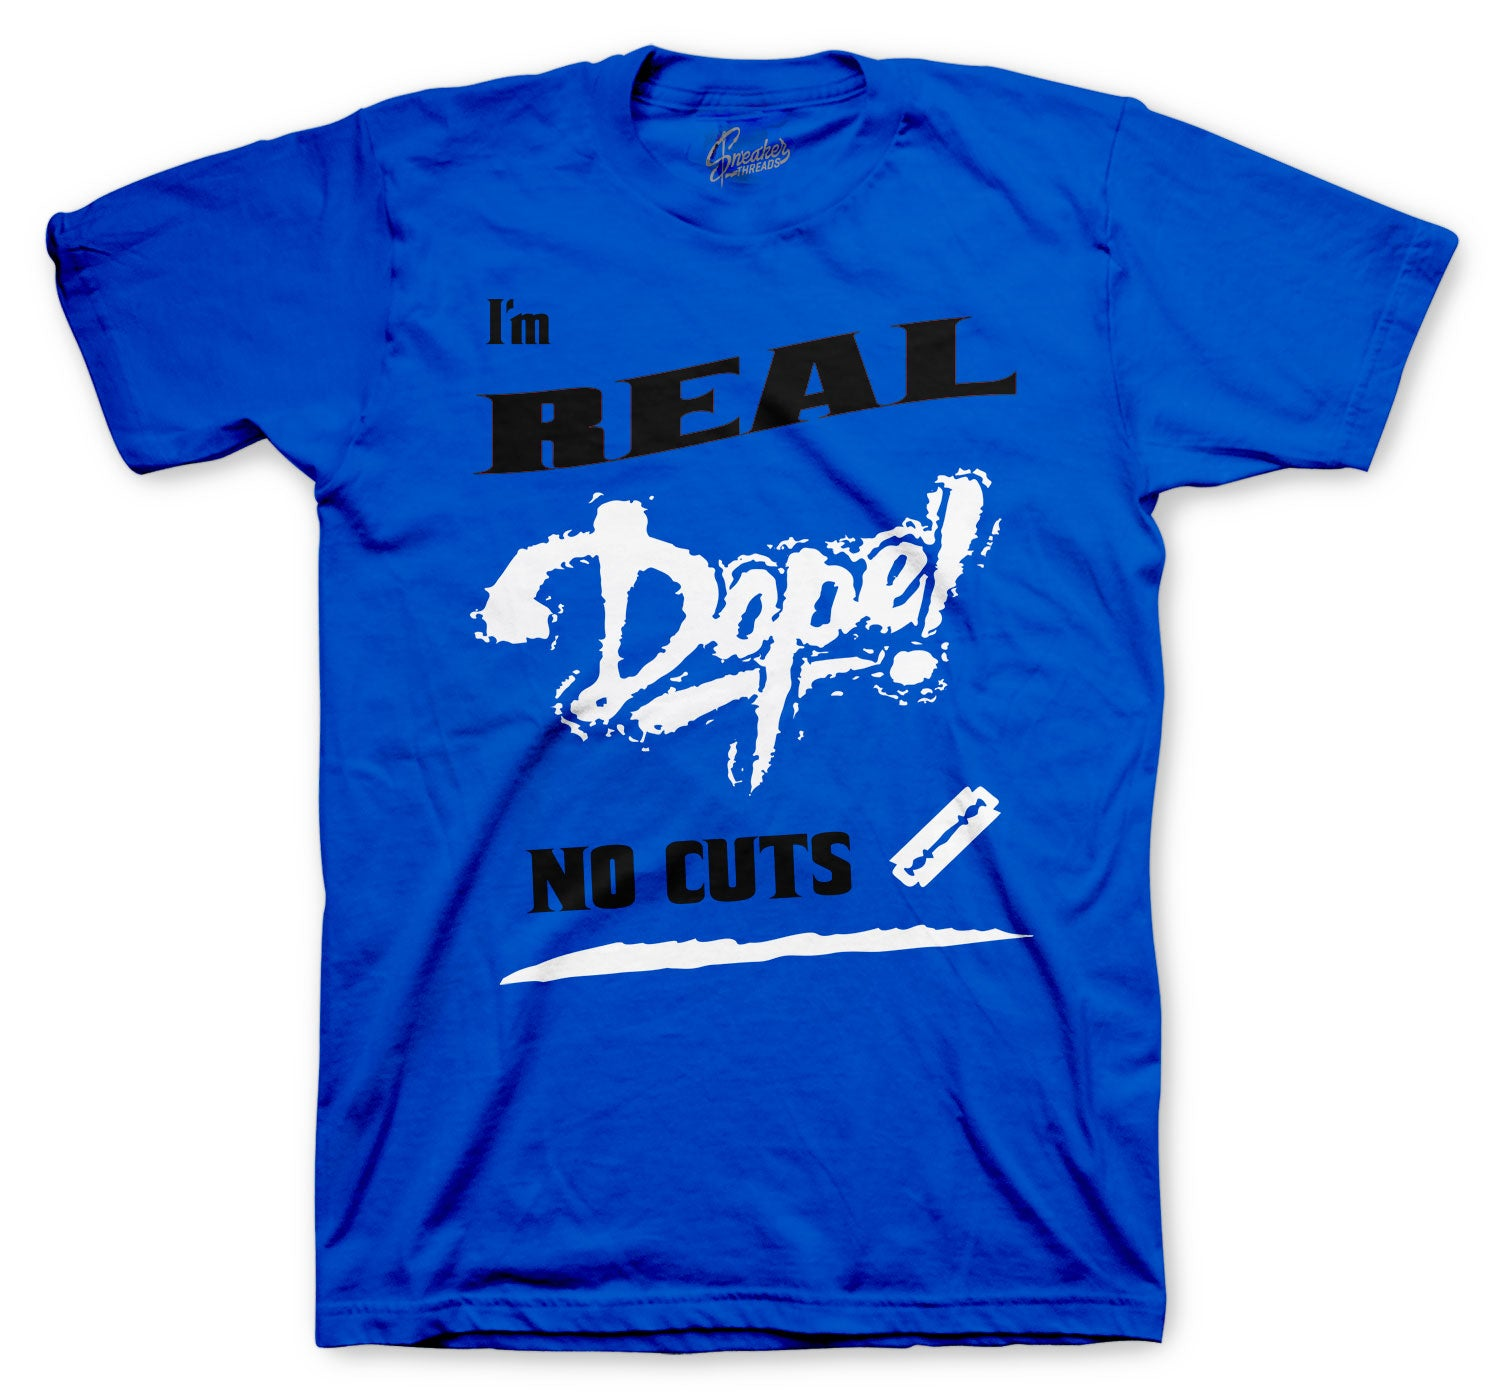 Jordan 14 Hyper Royal No Cuts Shirt